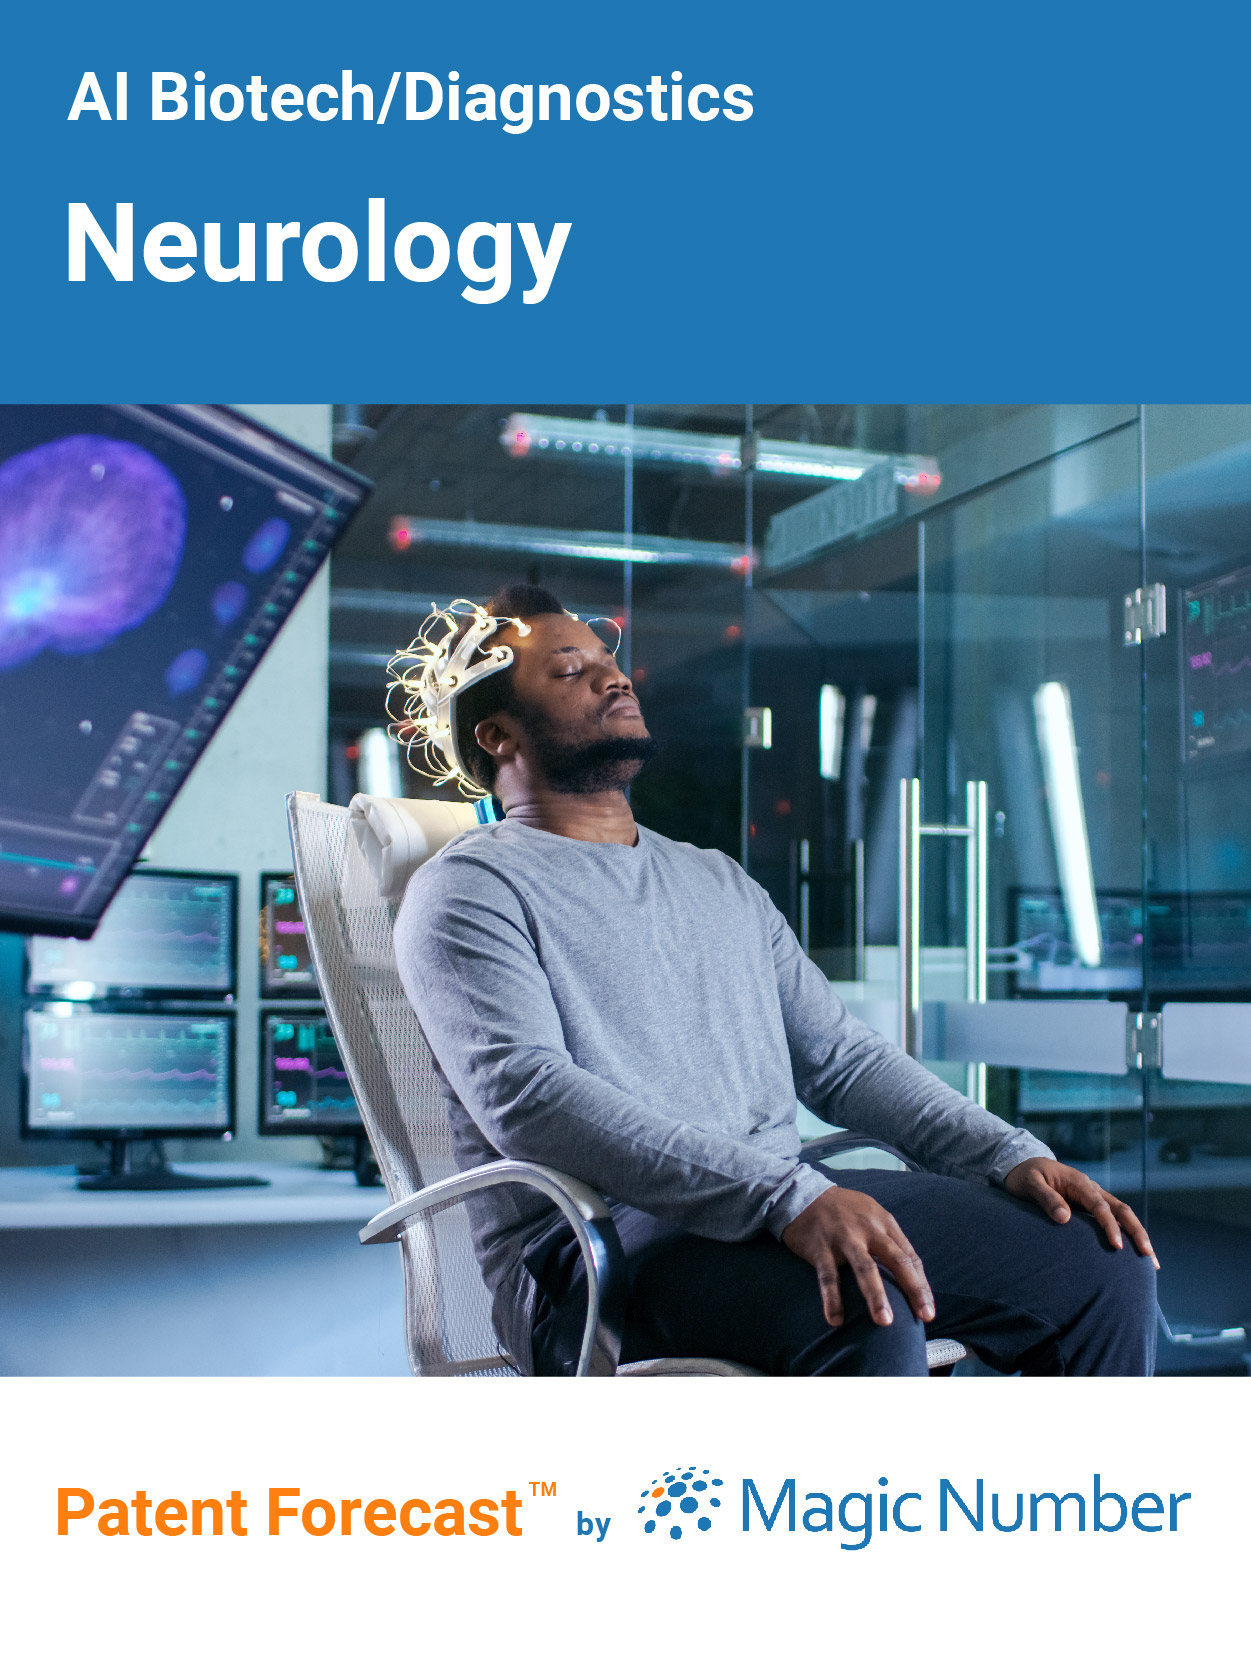 AI Biotech/Diagnostics: Neurology